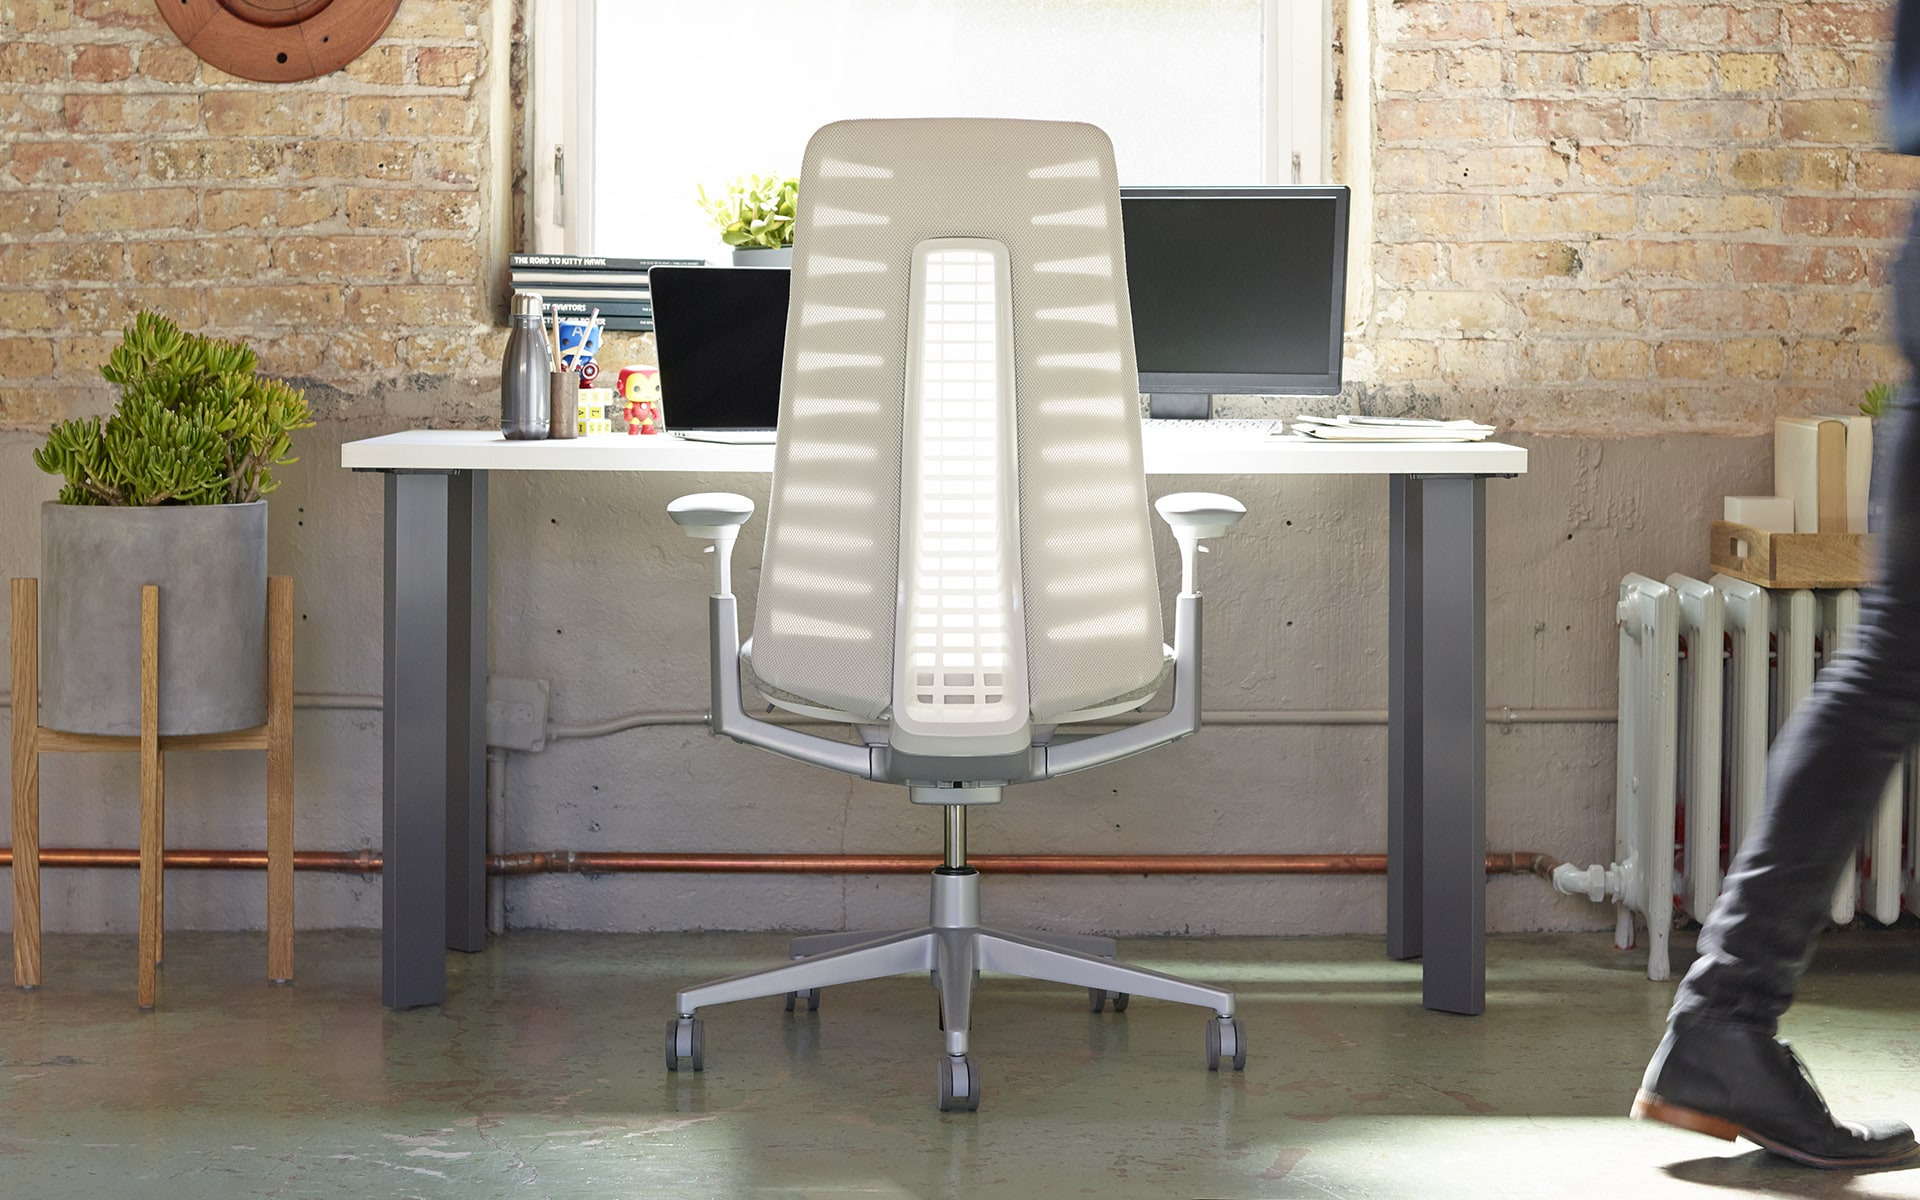 Haworth Fern office chair by ITO Design with white backrest at industrial chic workplace